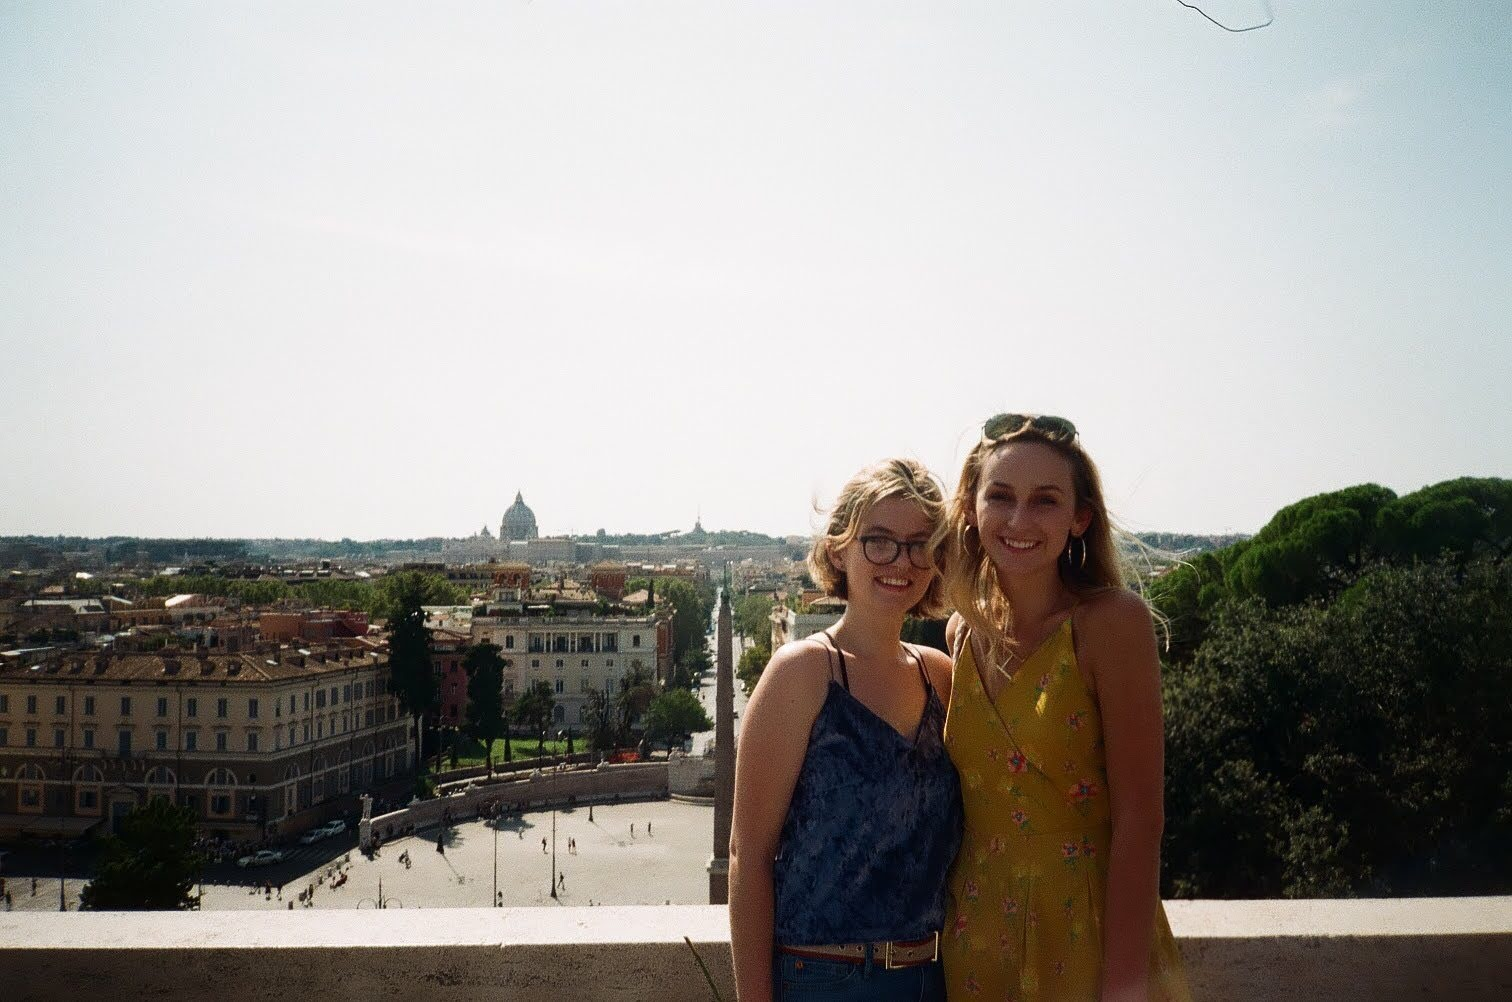 Hannah and friend overlooking Rome